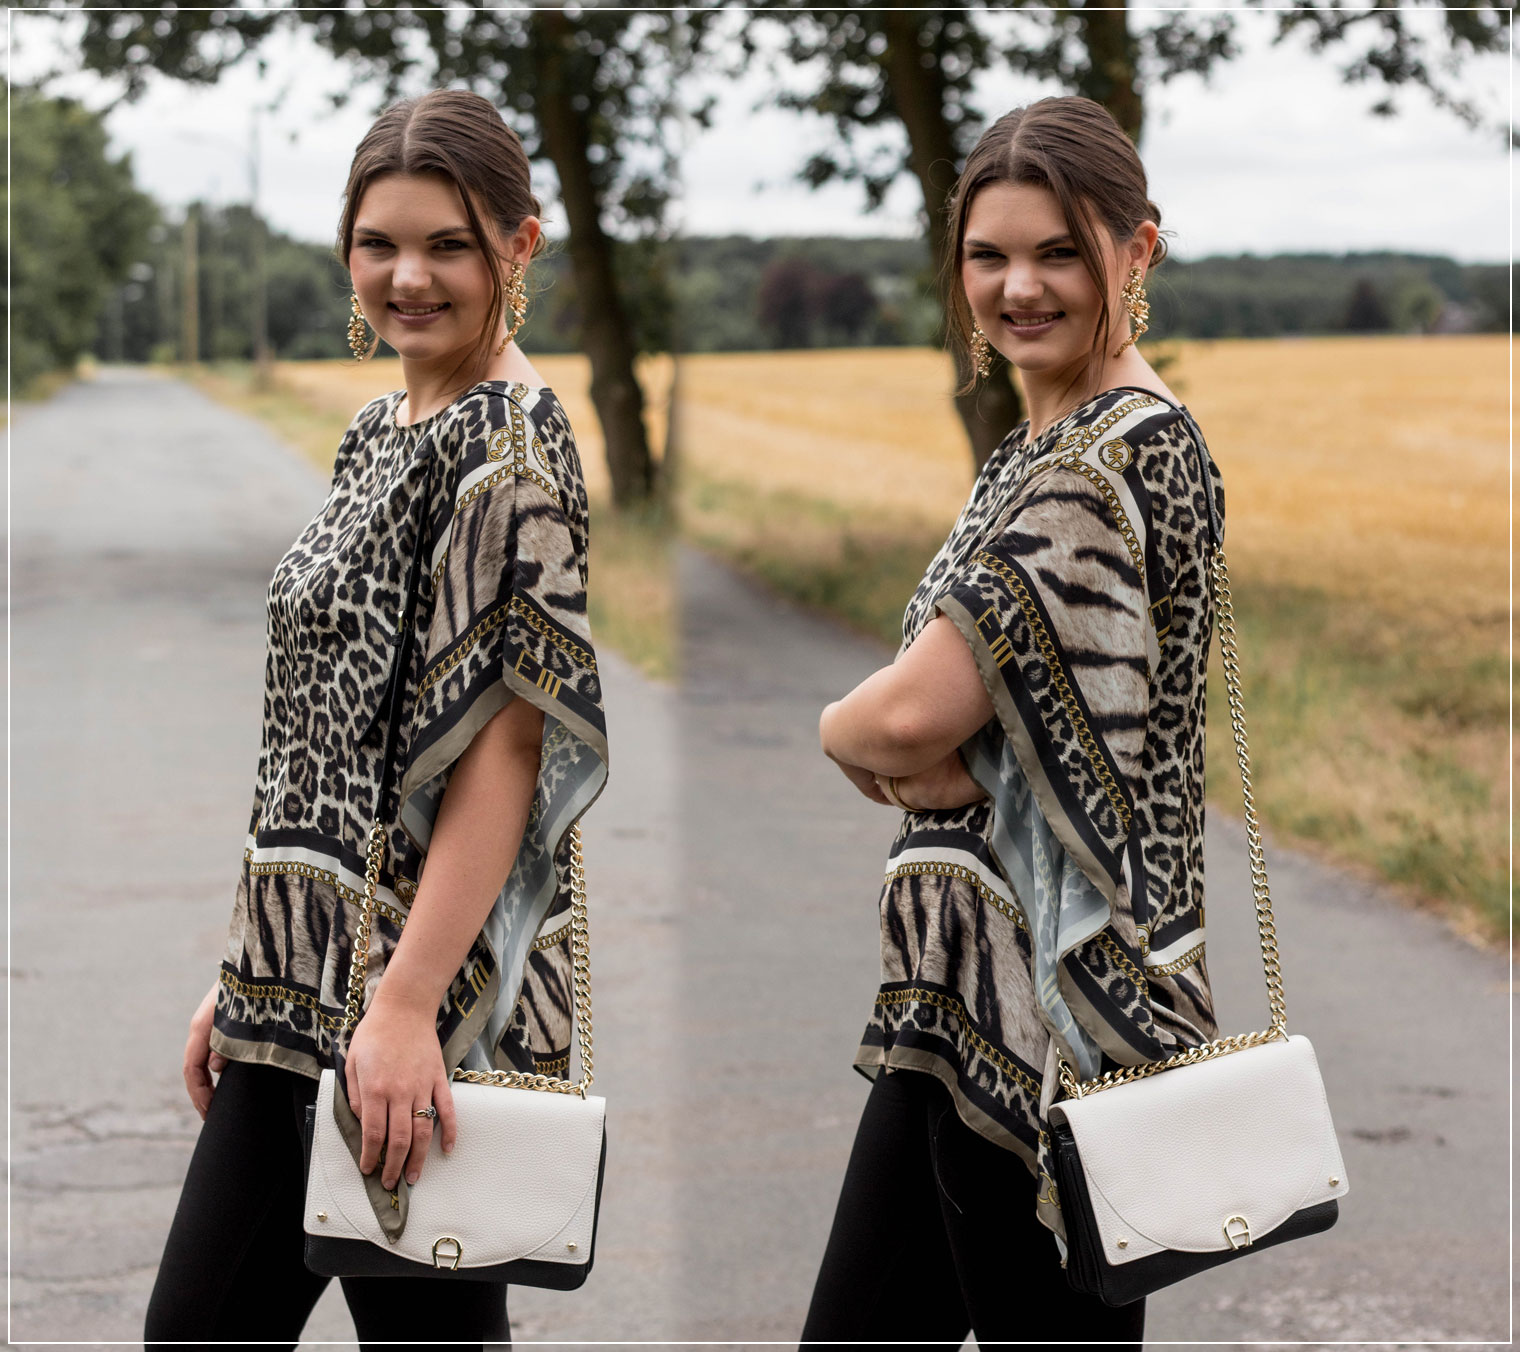 Animal-Print, Leo-Print, Tiermuster, Modetrend, Styleguide, Outfitinspiration, Modebloggerin, Fashionbloggerin, Modeblog, Ruhrgebiet